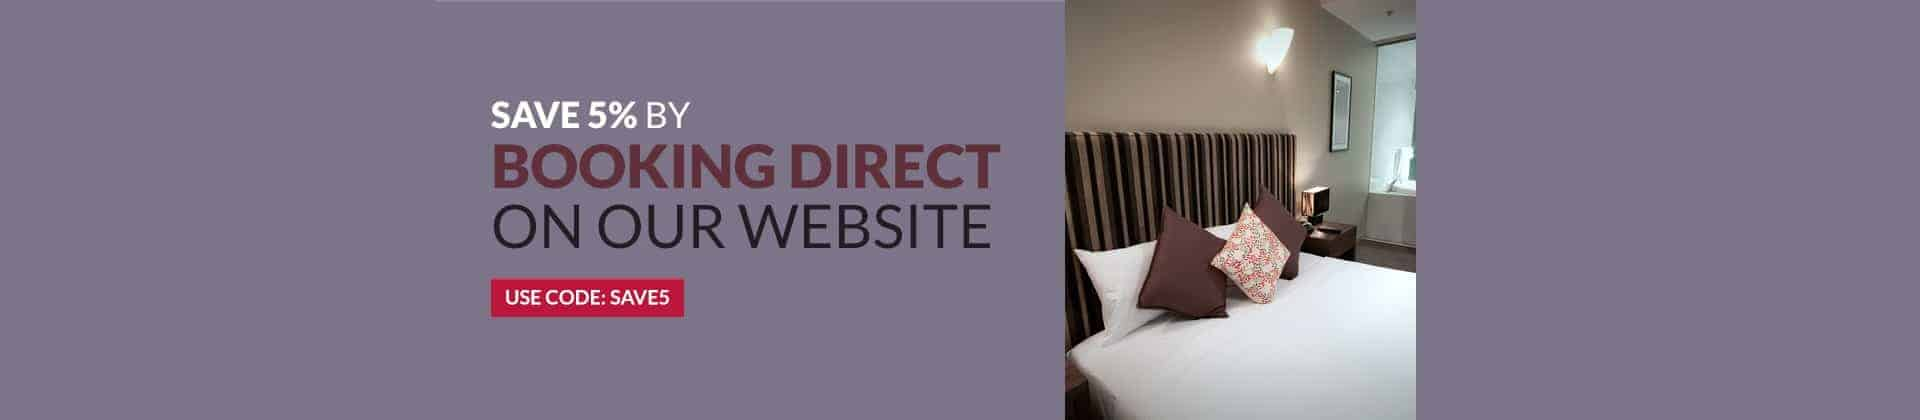 Book direct with La Loft hotel serviced apartments and save 5%